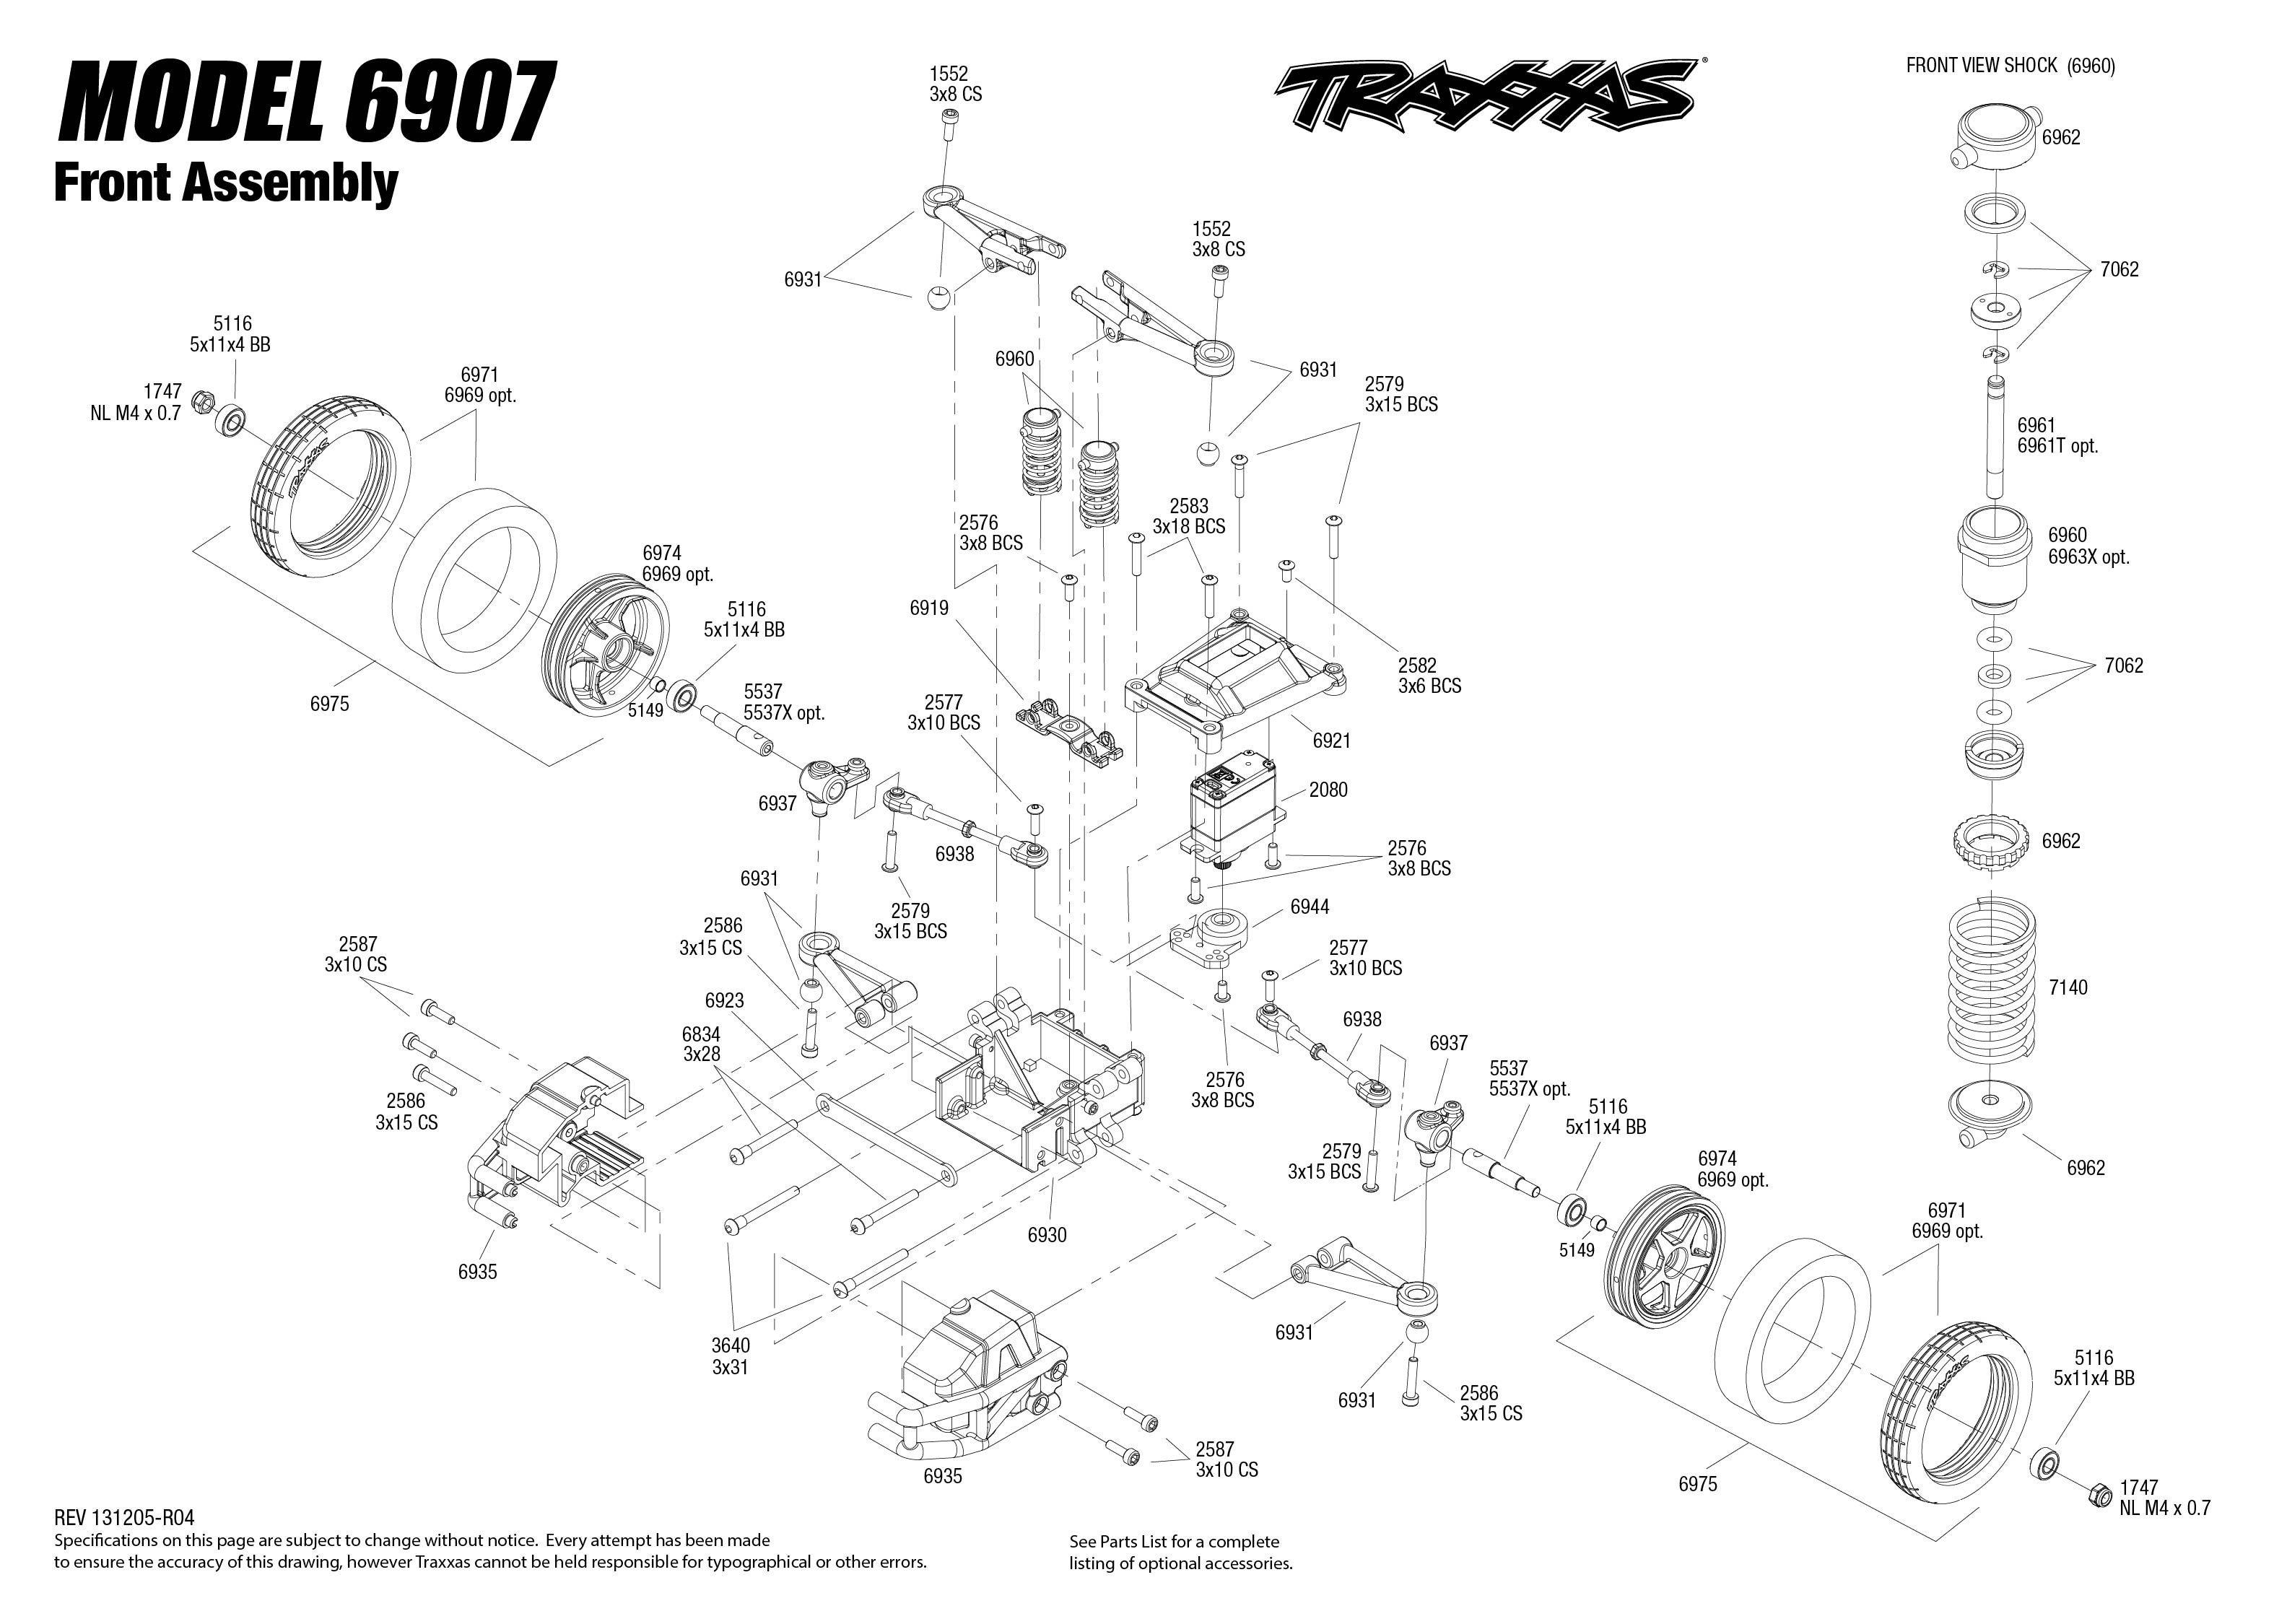 Car Schematic Aerial View